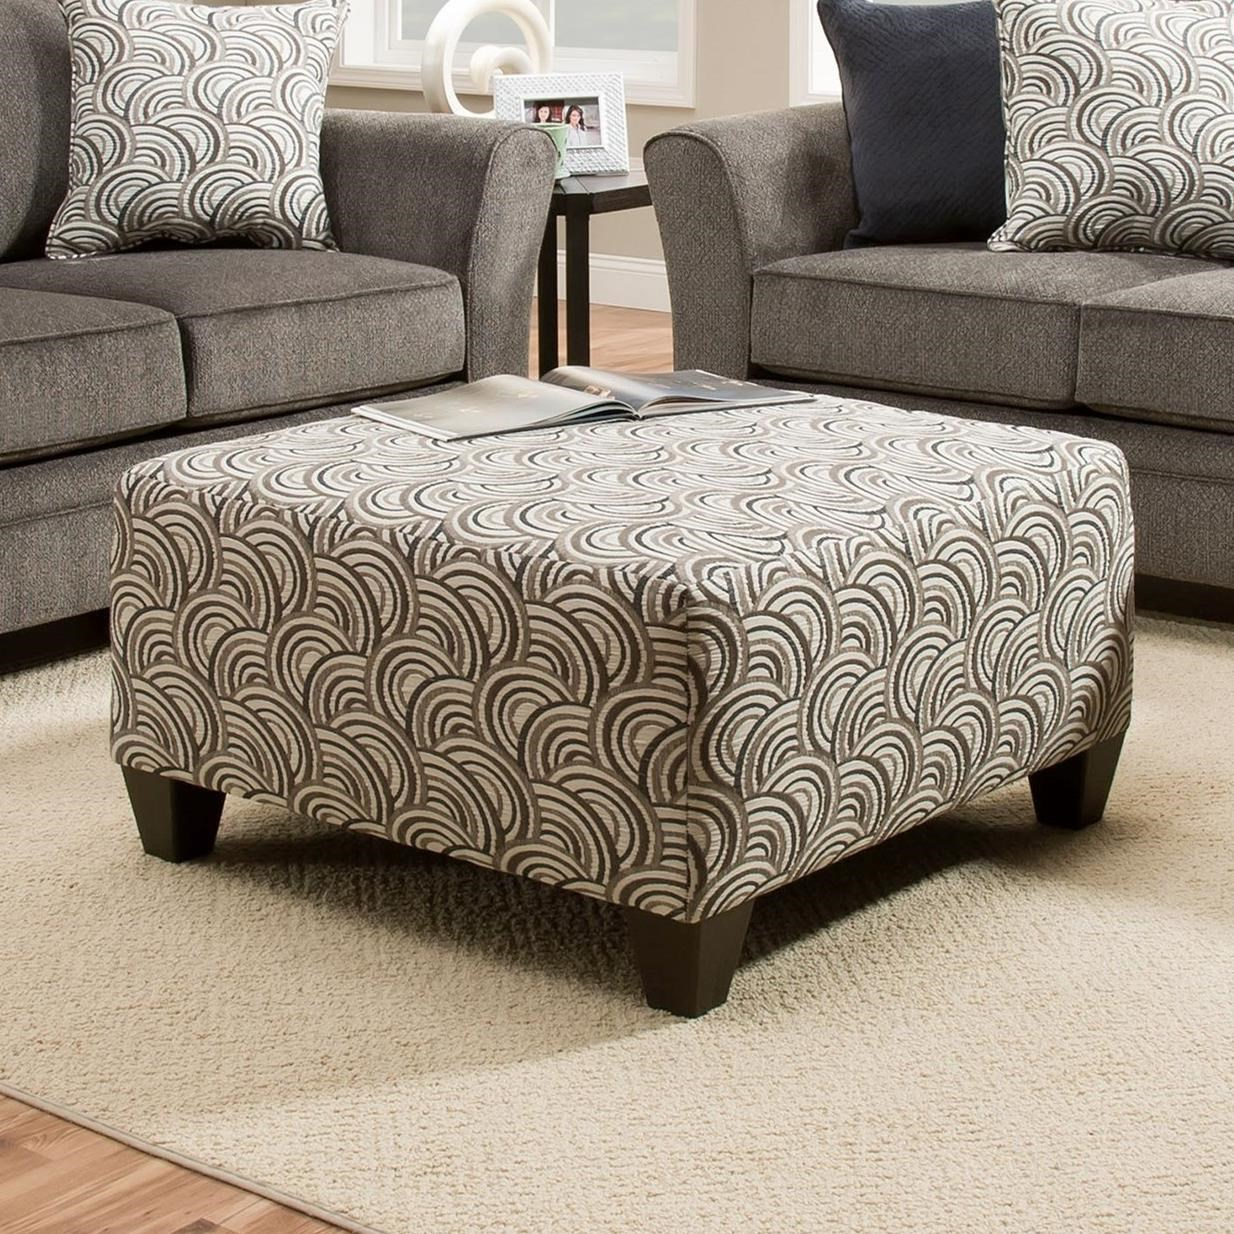 United Furniture Industries 6485 Cocktail Ottoman - Item Number: 6485CocktailOttoman-BastaSilver